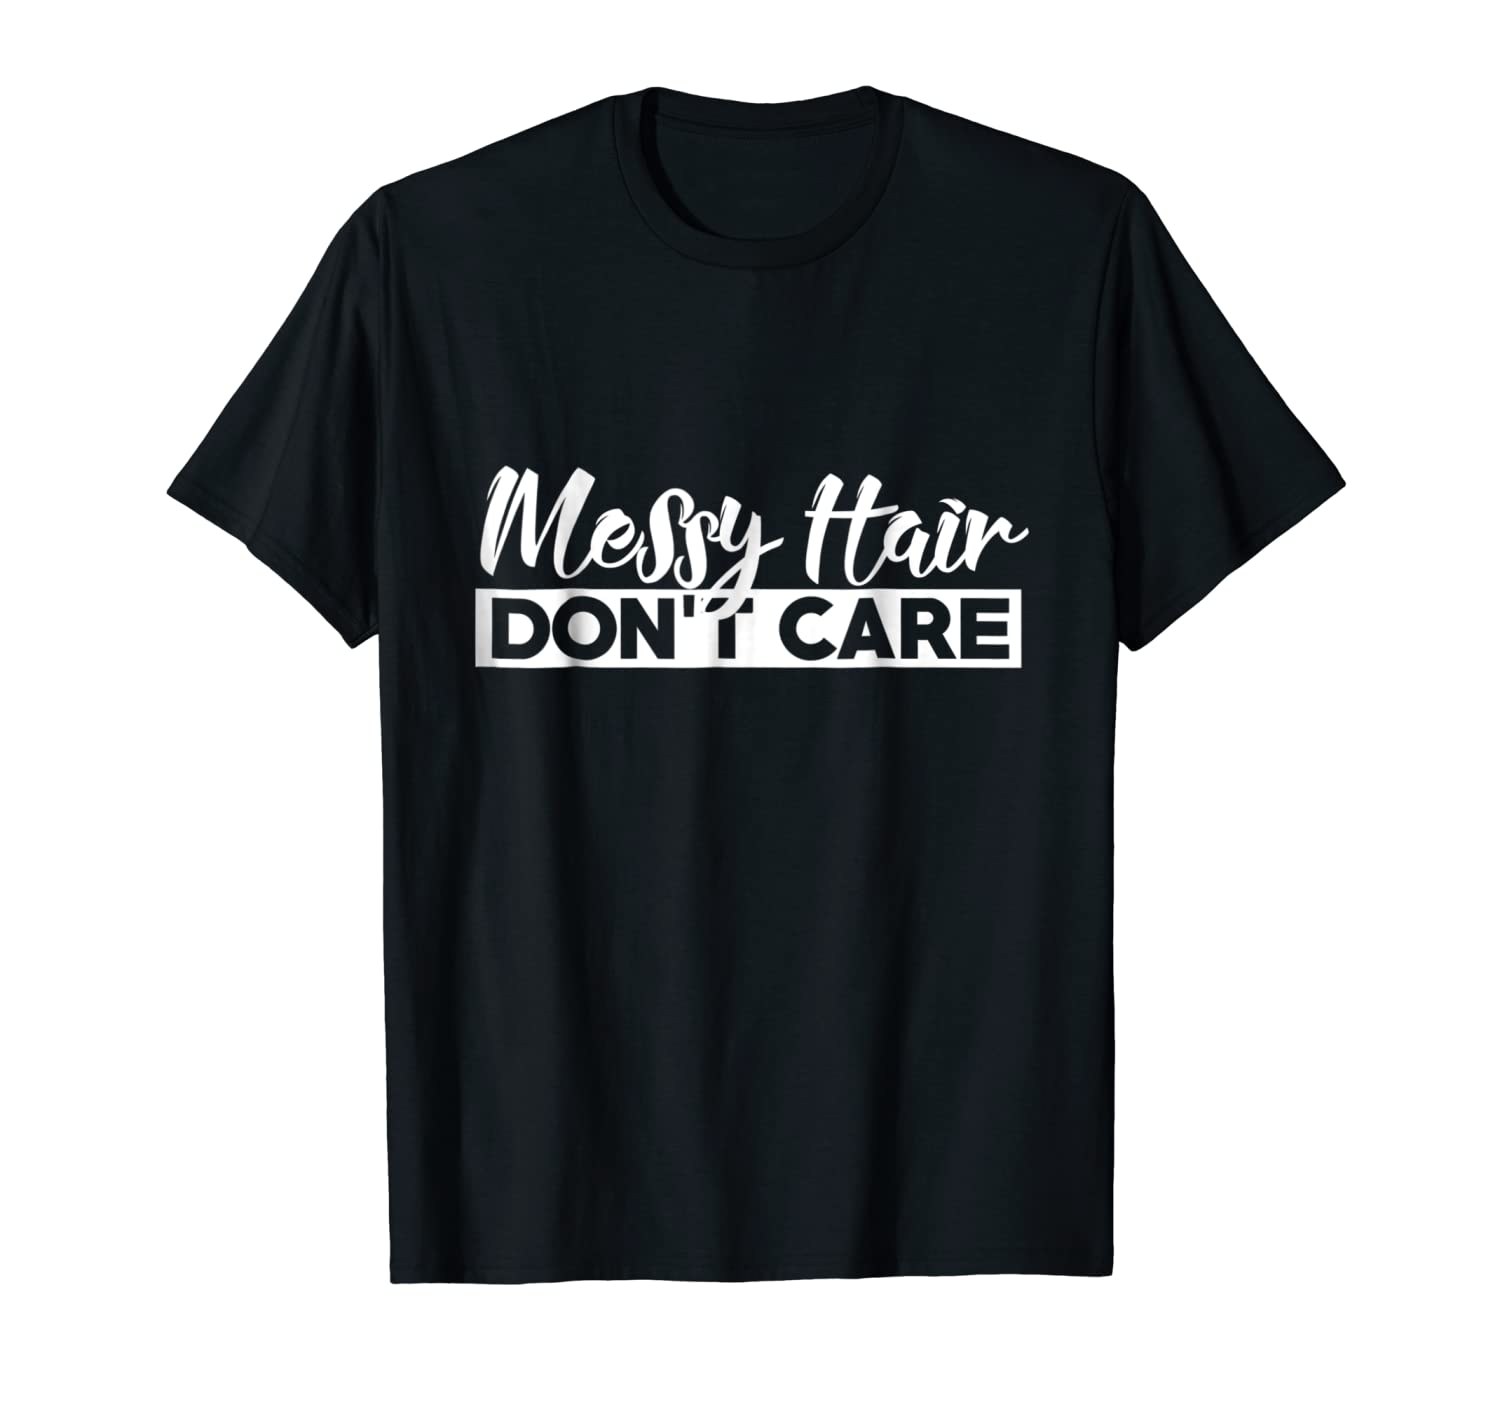 Messy Hair Don't Care shirt be proud of the mess t-shirt